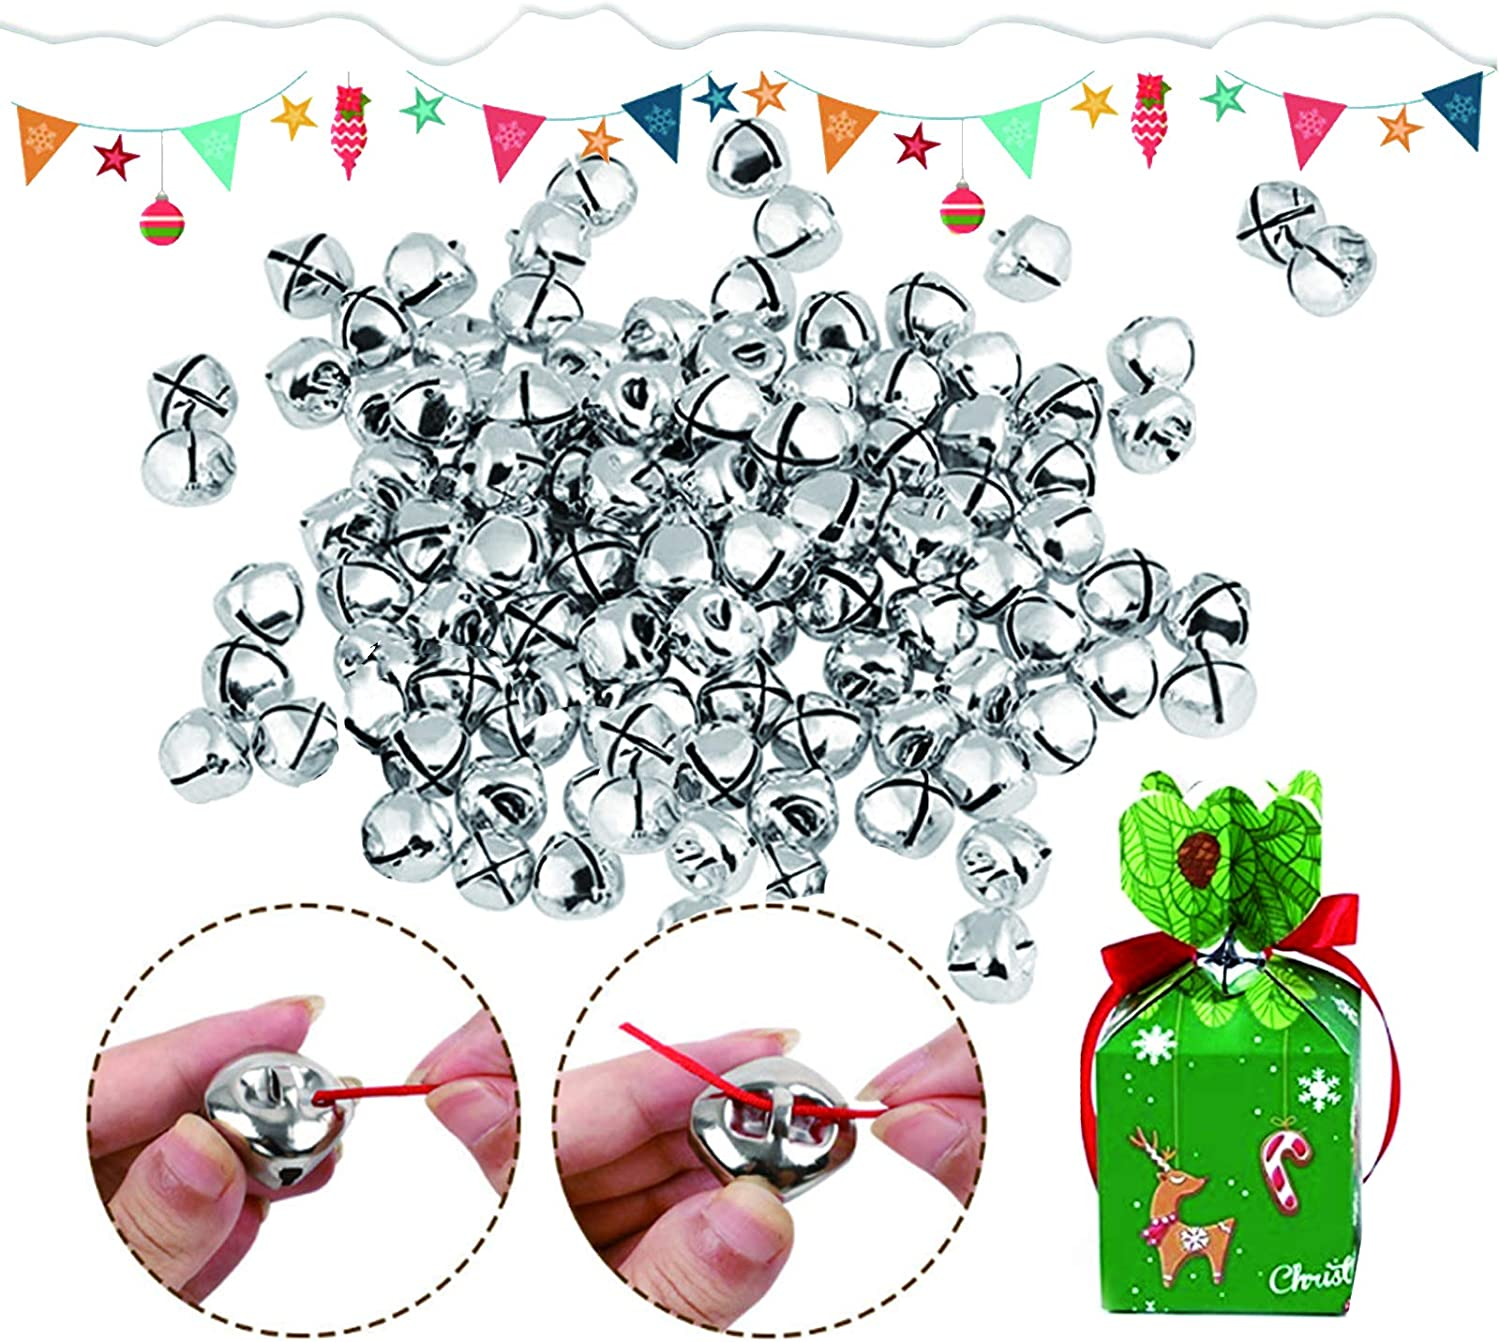 0.5 Inch Christmas Metal Bells Craft for Festival Decoration 1//2 Inch Craft Bells DIY Bells for Wreath Charms Jewelry Making 300Pcs Jingle Christmas Bells 0.5 inch, Sliver